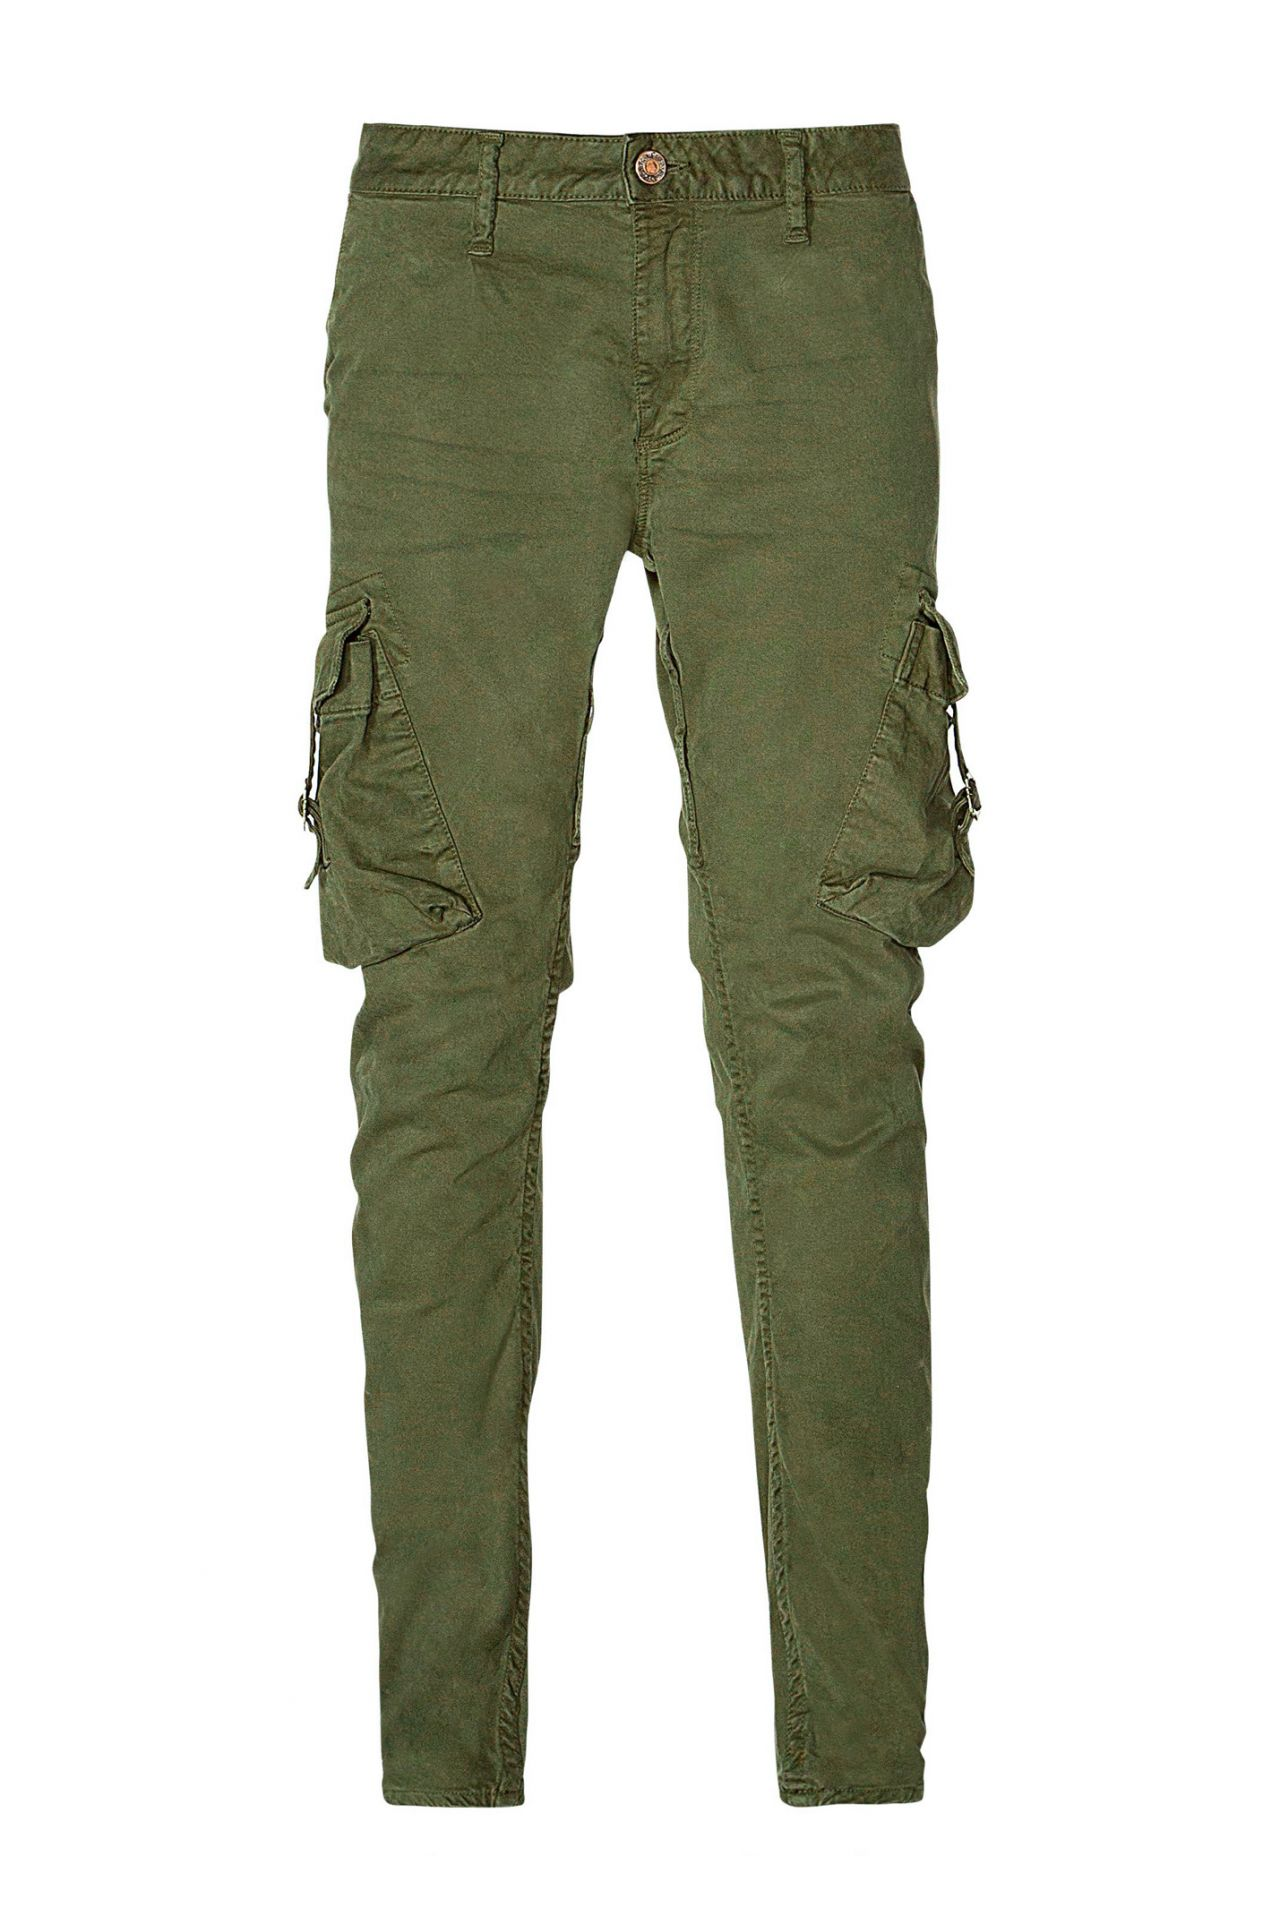 MILITARY STYLE CARGO IN GREEN OLIVE WITH CRYSTALS